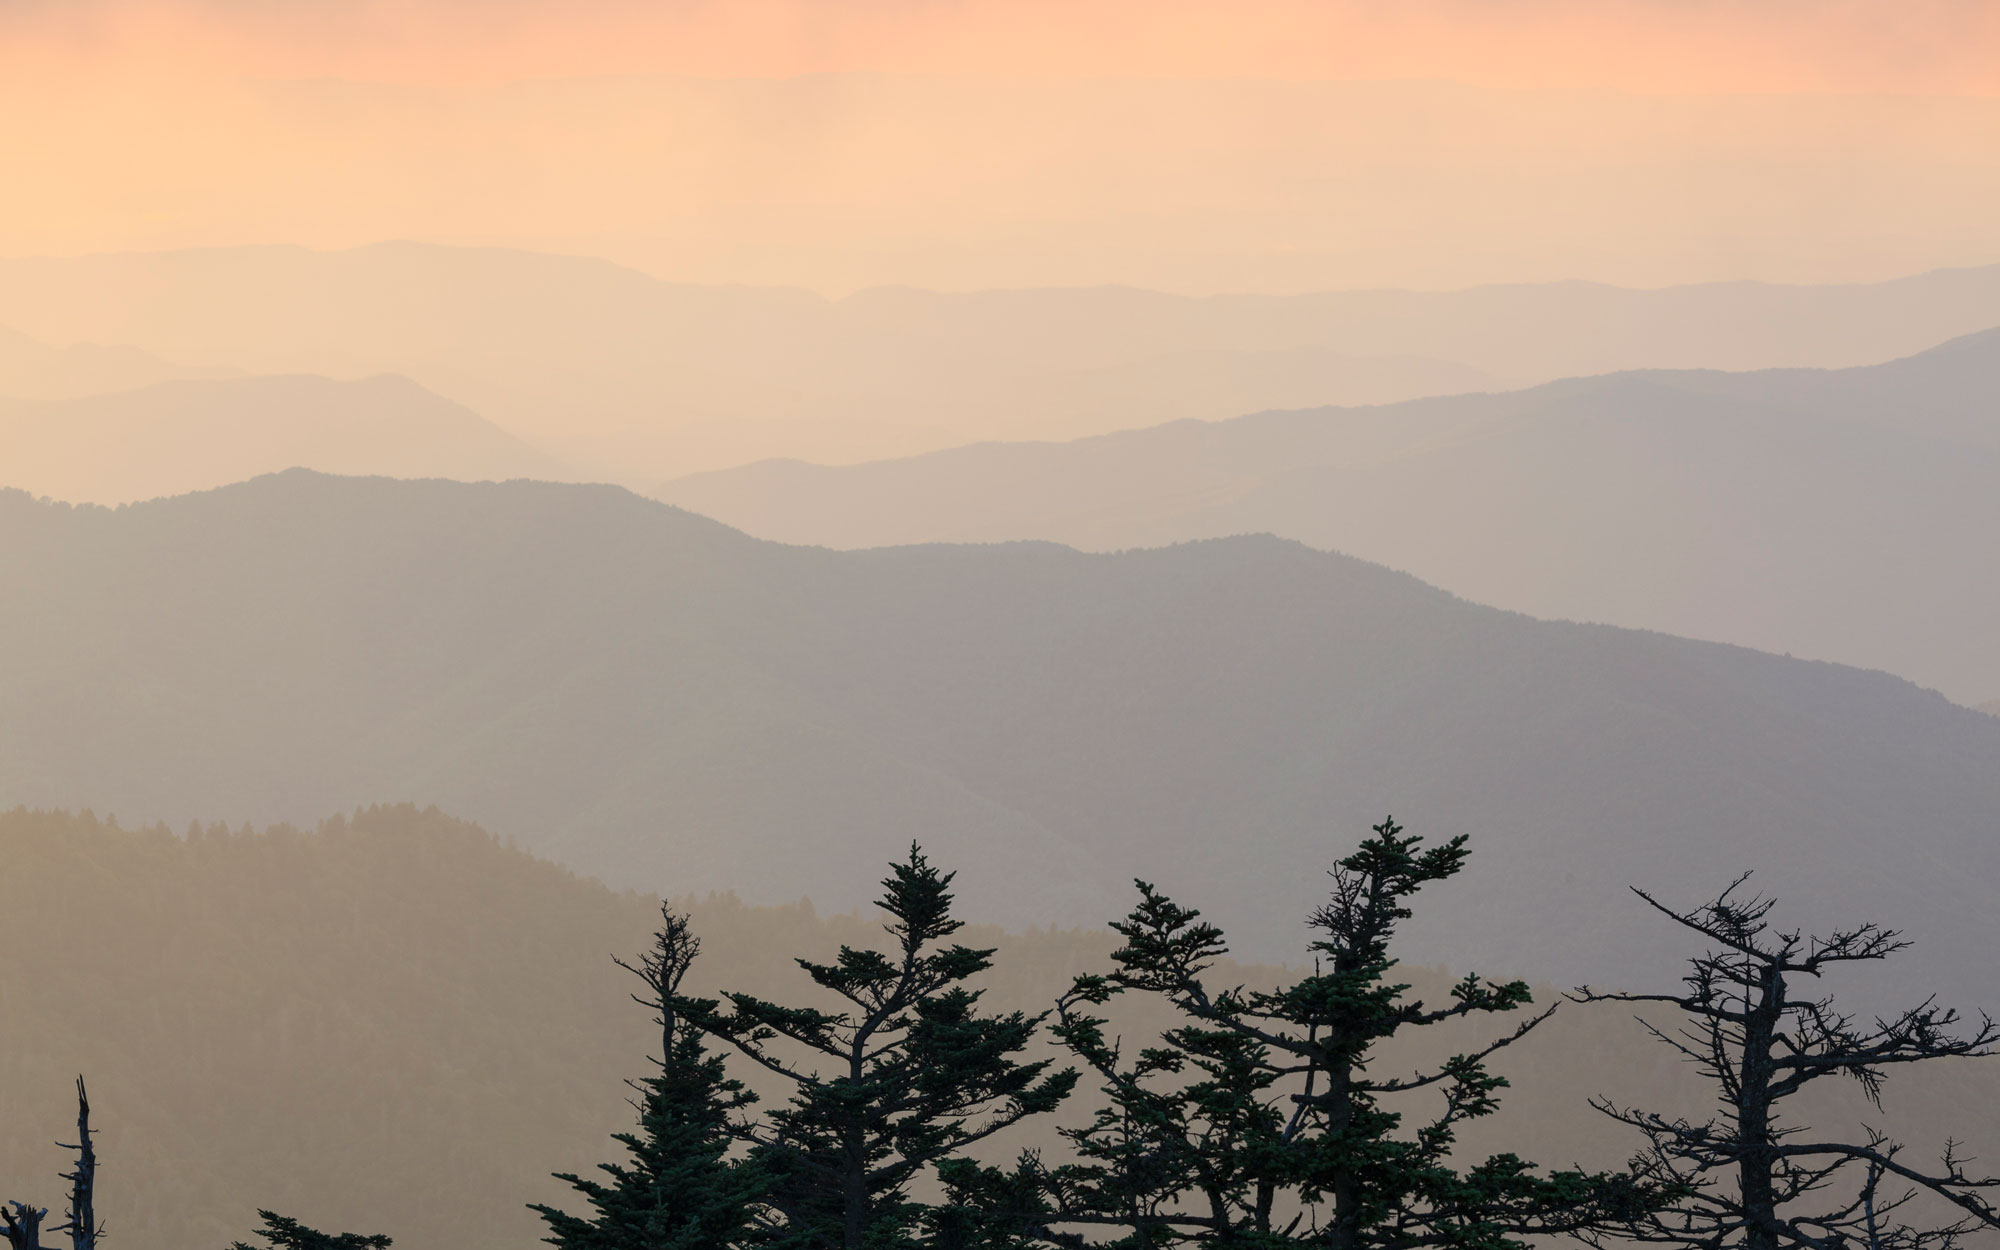 Tennessee from Clingmans Dome Observation Tower